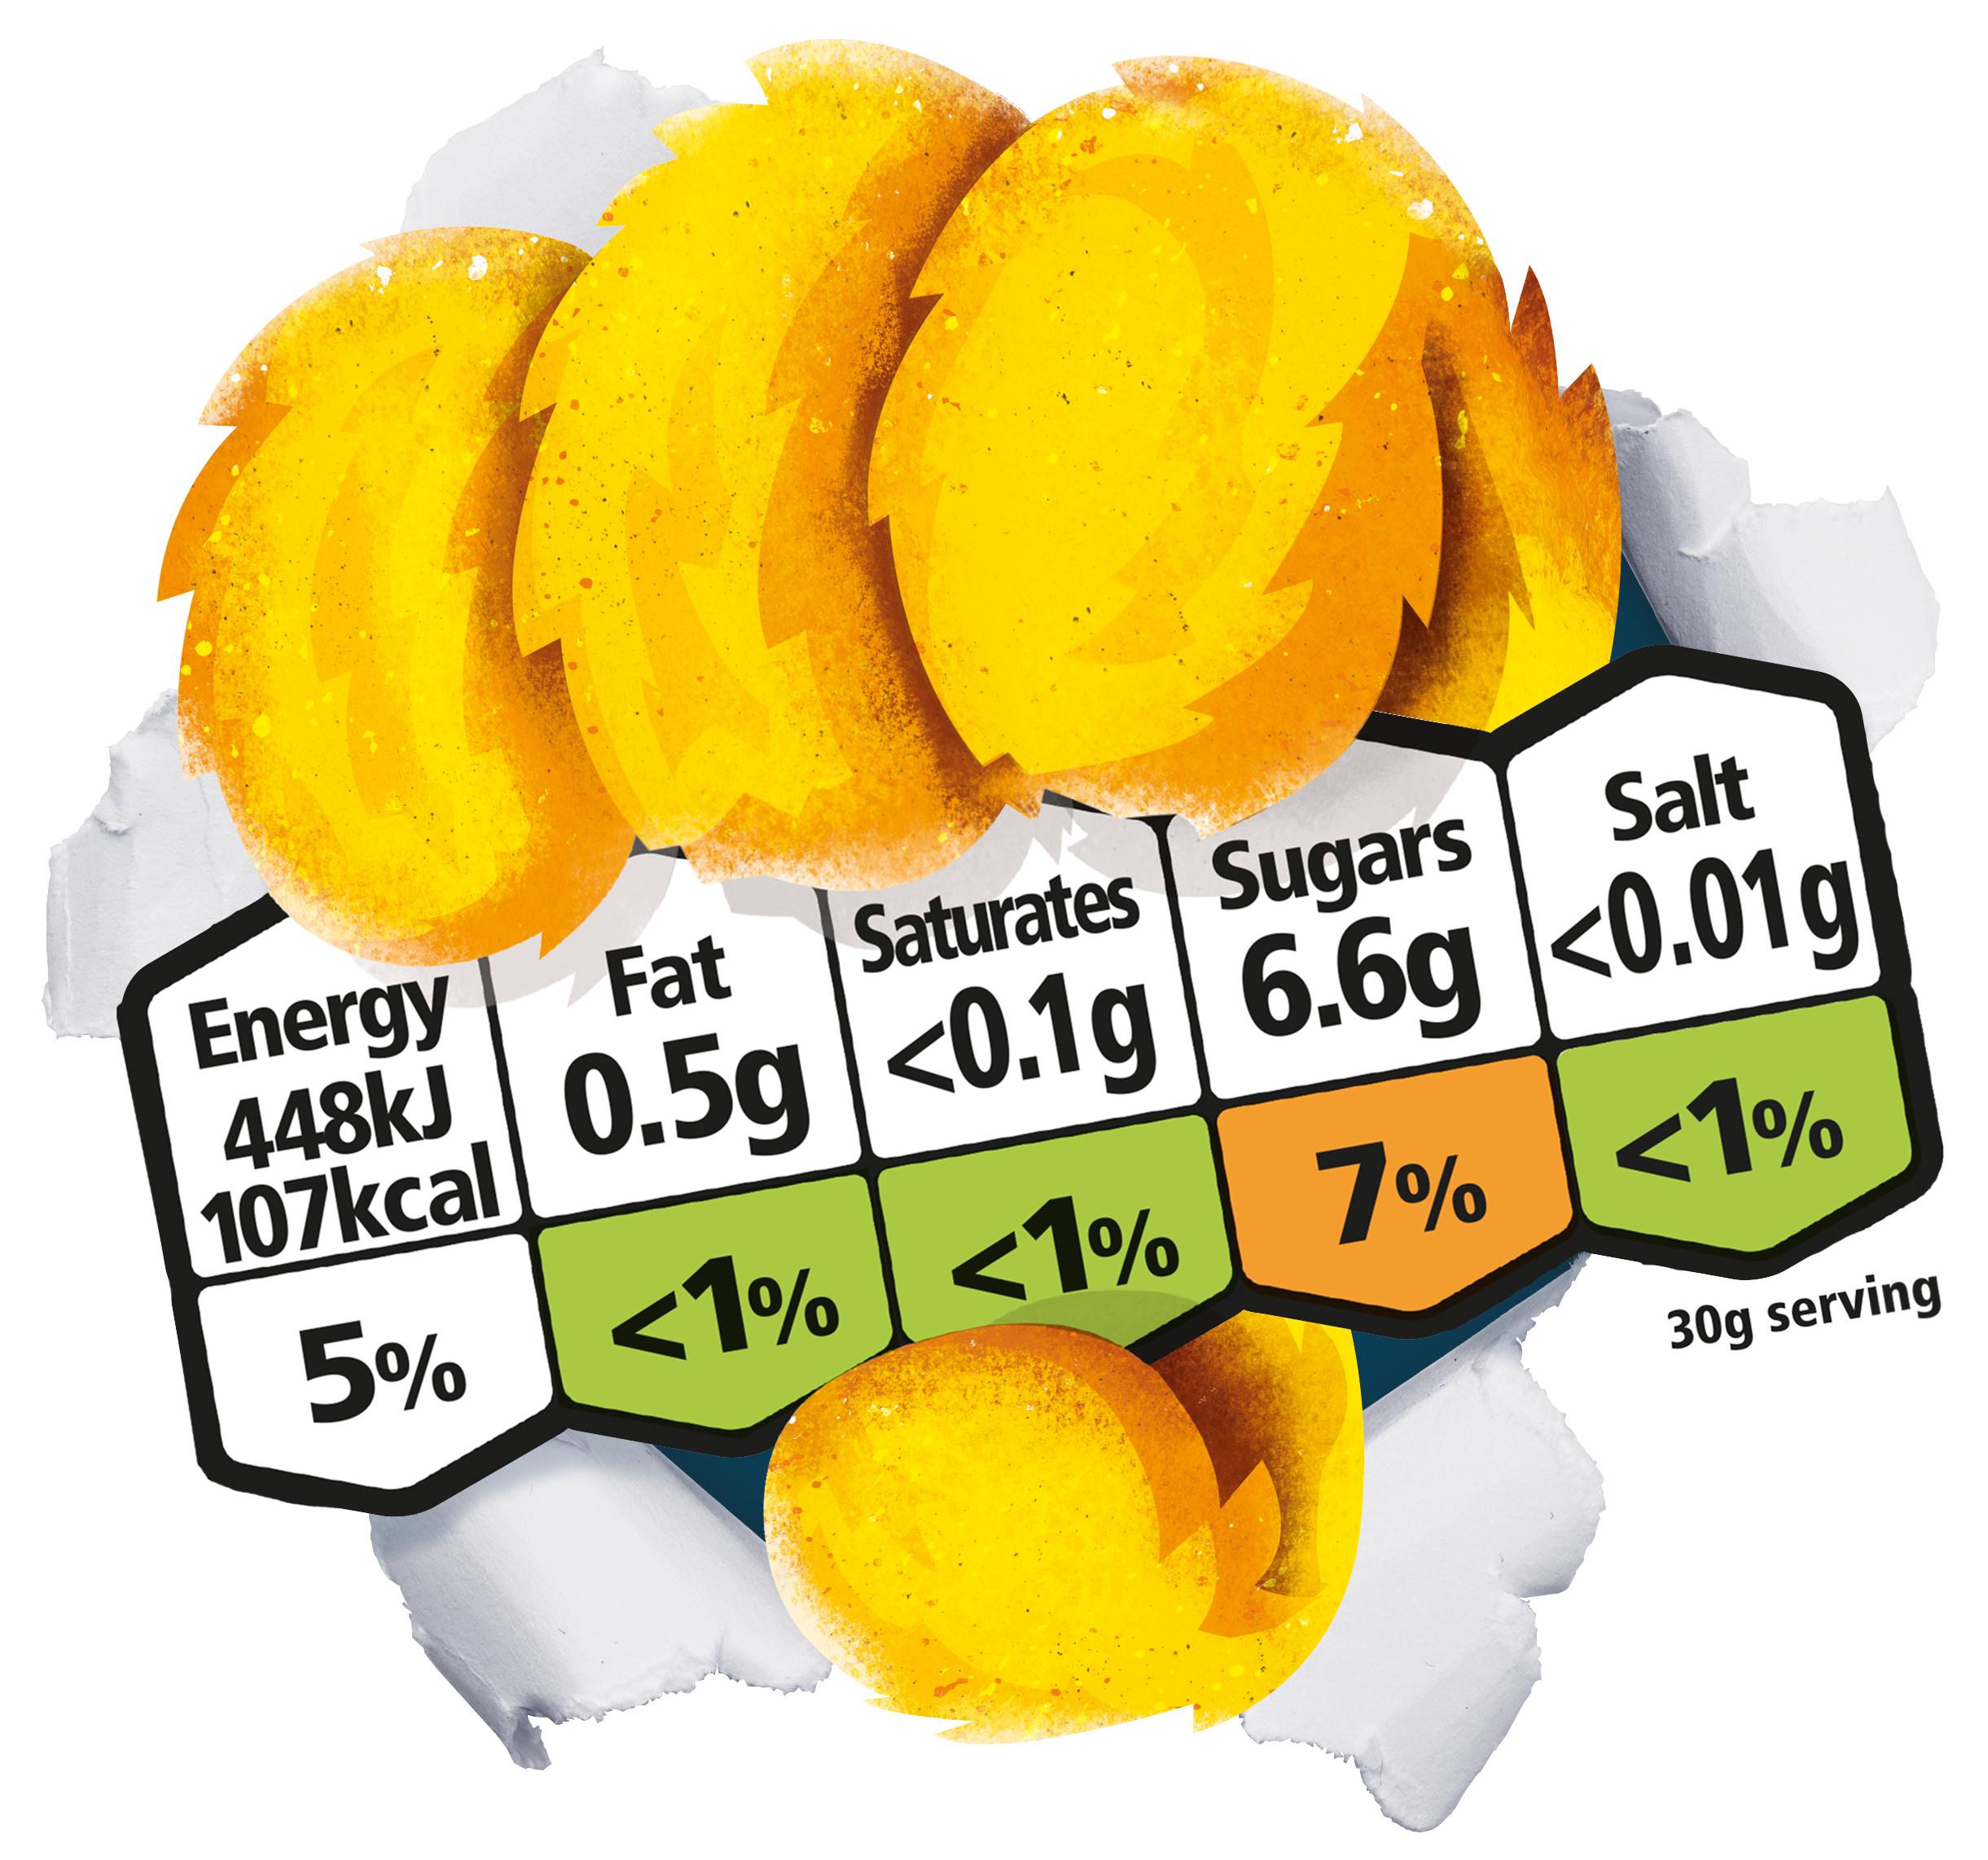 Energy - 448kj 107kcal, Fat 0.5g, Saturates <0.1g, Sugars 6.6g, Salt <0.01g per 30g serving